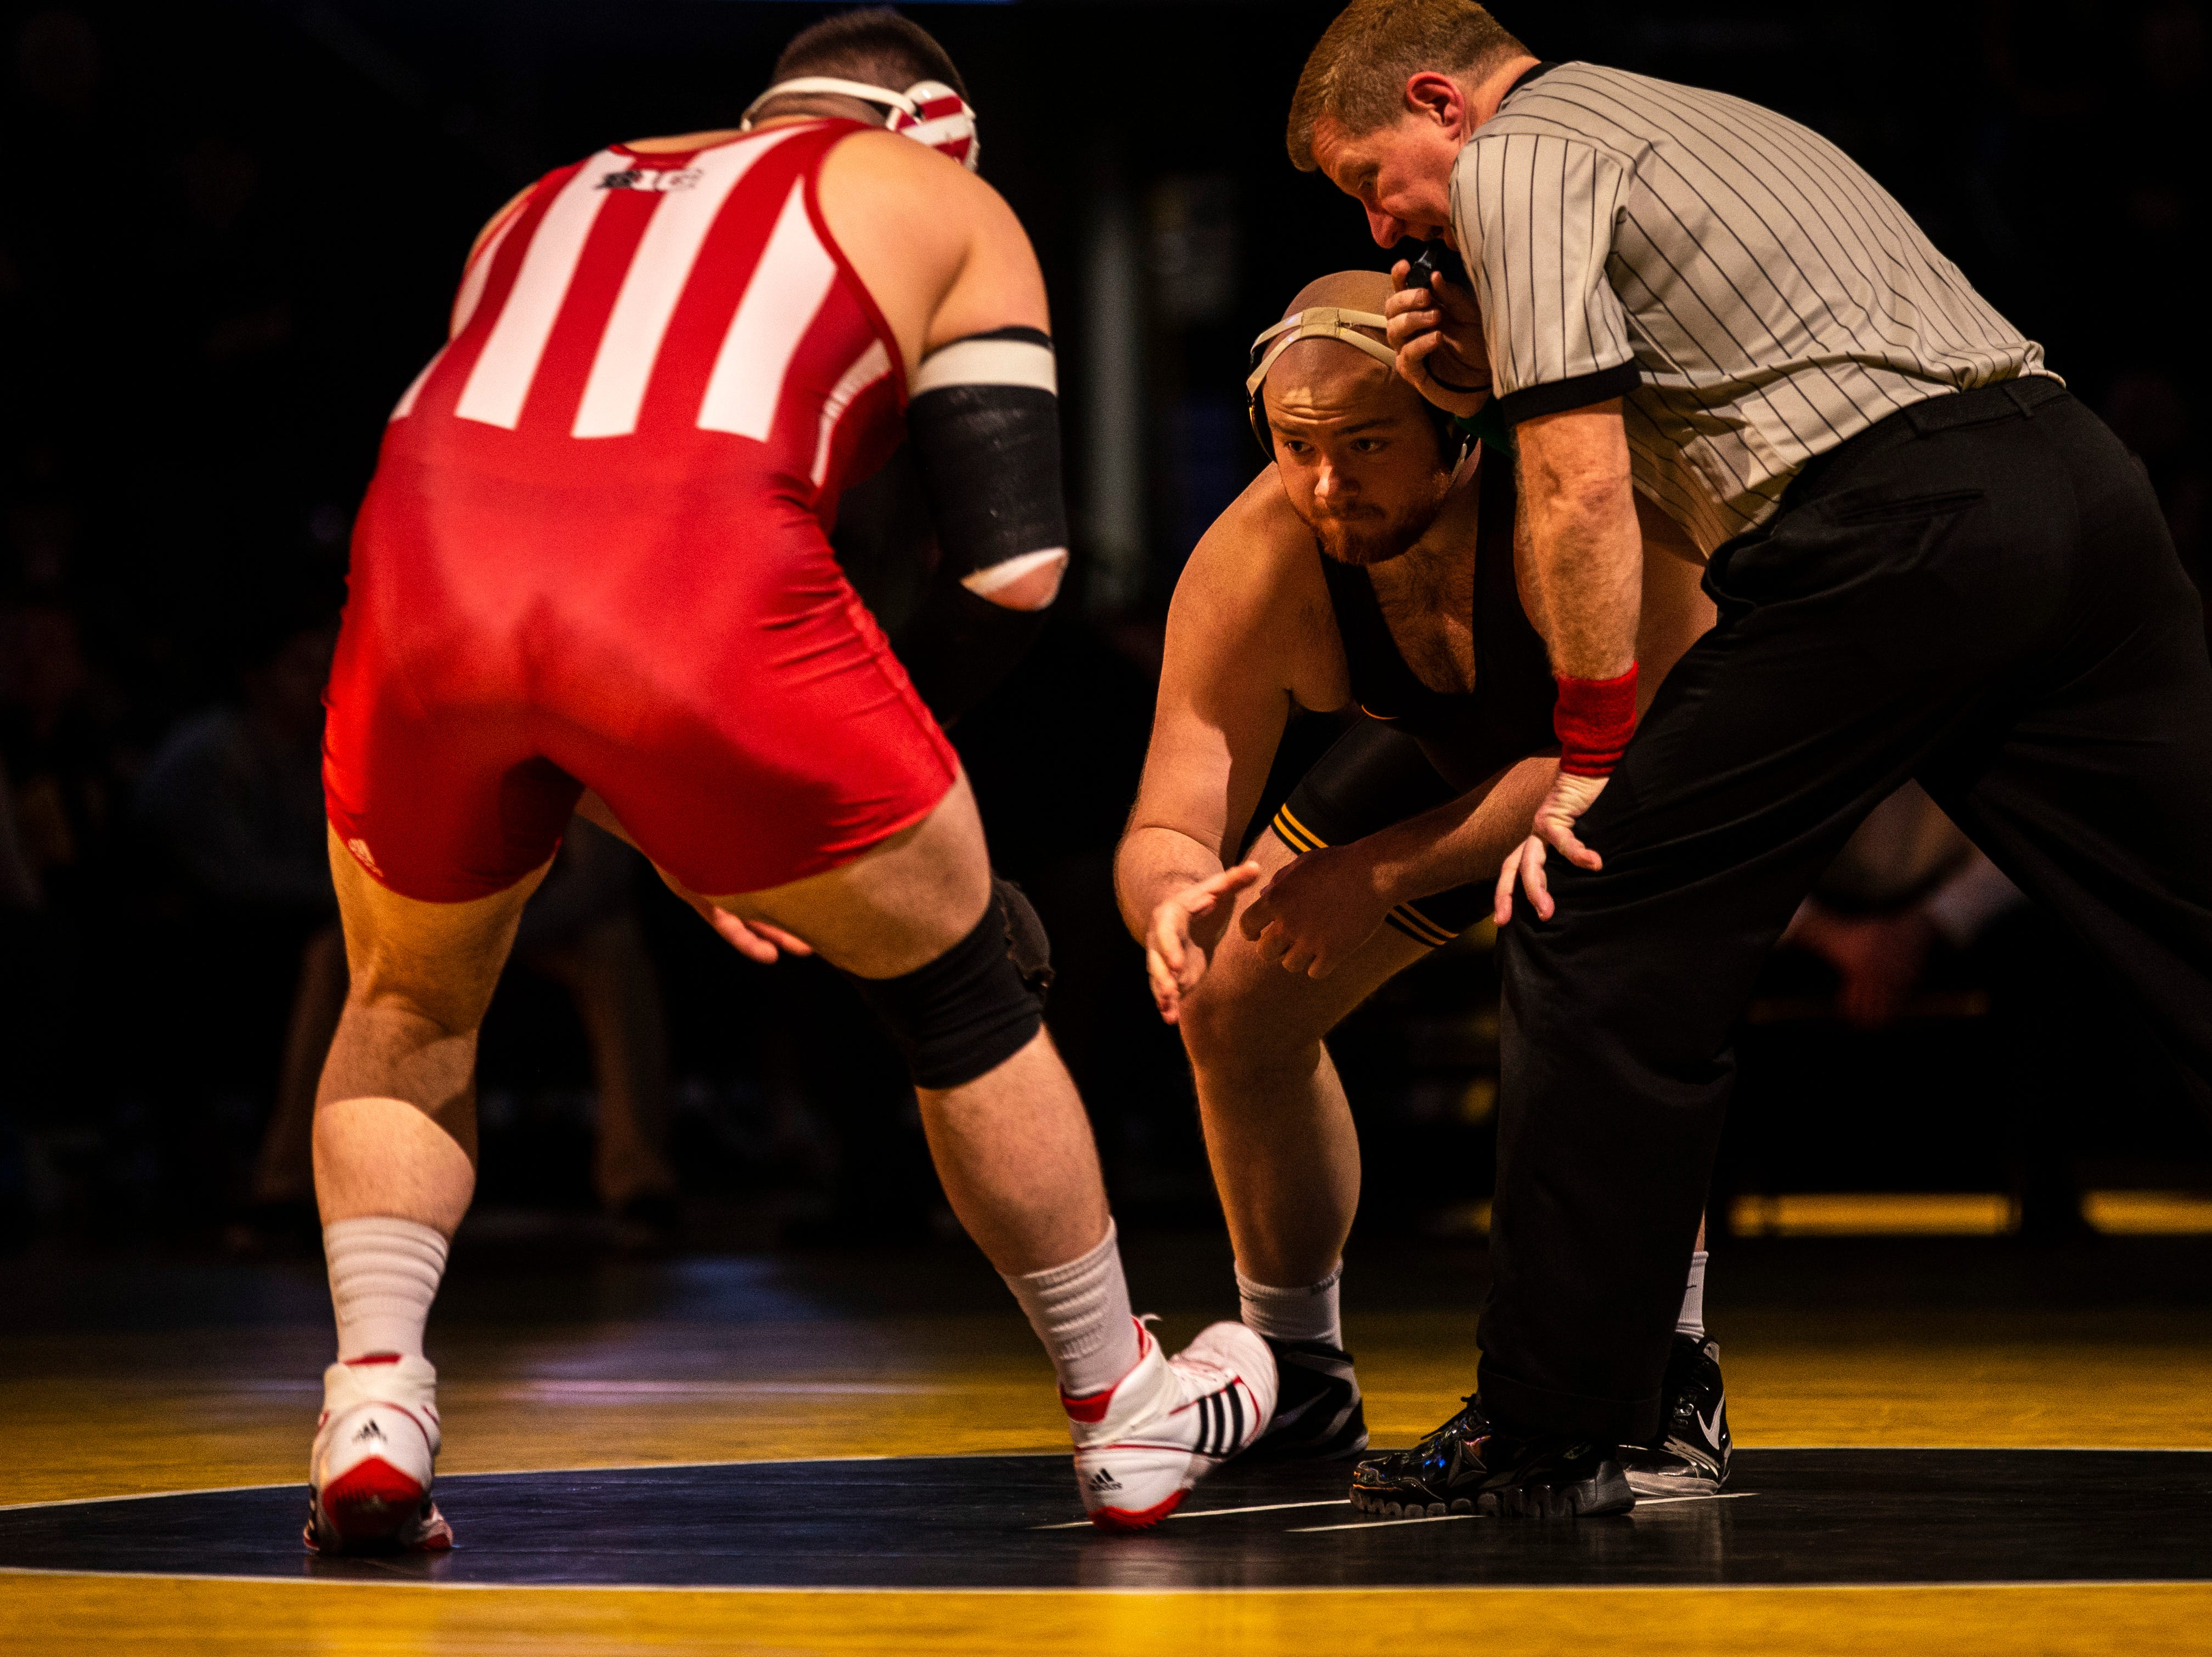 Iowa's Sam Stoll, right, shakes hands with Indiana's Fletcher Miller at 285 during a NCAA Big Ten Conference wrestling dual on Friday, Feb. 15, 2019 at Carver-Hawkeye Arena in Iowa City, Iowa.